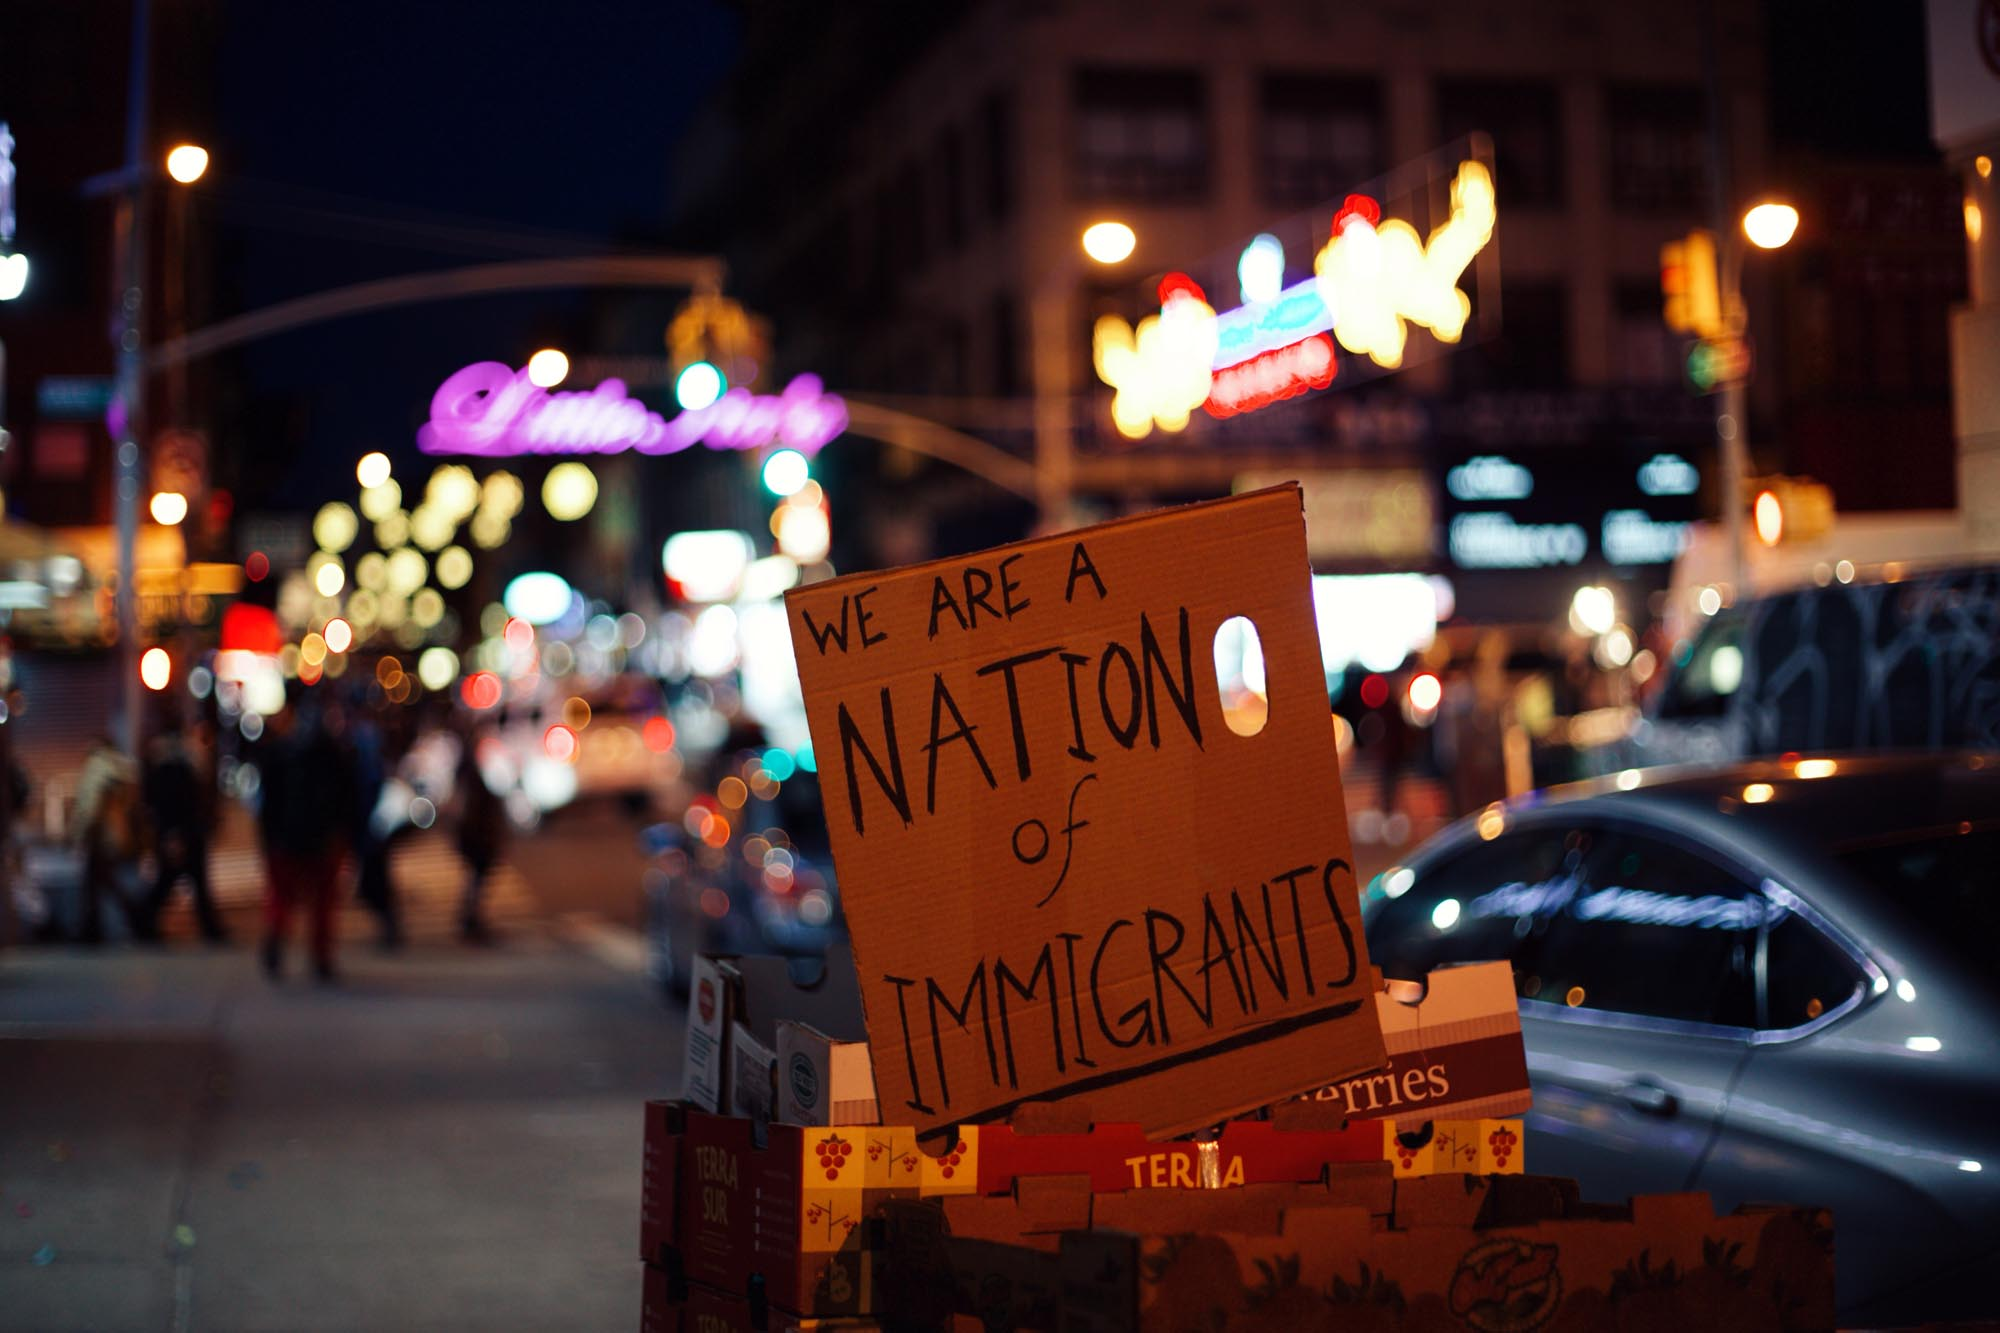 """""""We are a nation of immigrants"""" –at the intersection of Little Italy and Chinatown.       try{(function() {if (typeof(lpcurruser) == 'undefined') lpcurruser = ''; if (document.getElementById('lpcurruserelt') && document.getElementById('lpcurruserelt').value != '') { lpcurruser = document.getElementById('lpcurruserelt').value; document.getElementById('lpcurruserelt').value = ''; } if (typeof(lpcurrpass) == 'undefined') lpcurrpass=''; if (document.getElementById('lpcurrpasselt') && document.getElementById('lpcurrpasselt').value != '') { lpcurrpass = document.getElementById('lpcurrpasselt').value; document.getElementById('lpcurrpasselt').value = ''; } var lploc=3;var lponlyfill=1;(function() { var doc=document; var _u=null; var _p=null; var body=doc.body; if (lploc==3 && body.className.indexOf('squarespace-login') =0) { var inps =doc.getElementsByName('password'); if (inps.length 0) { _p =inps[0]; } inps =doc.getElementsByName('email'); if (inps.length 0) { _u =inps[0]; }  if (lpcurrpass && _p) { _p.value = lpcurrpass; } if (lpcurruser && _u) { _u.value = lpcurruser; } } })();lpcurruser = ''; lpcurrpass = '';})();}catch(e){}"""